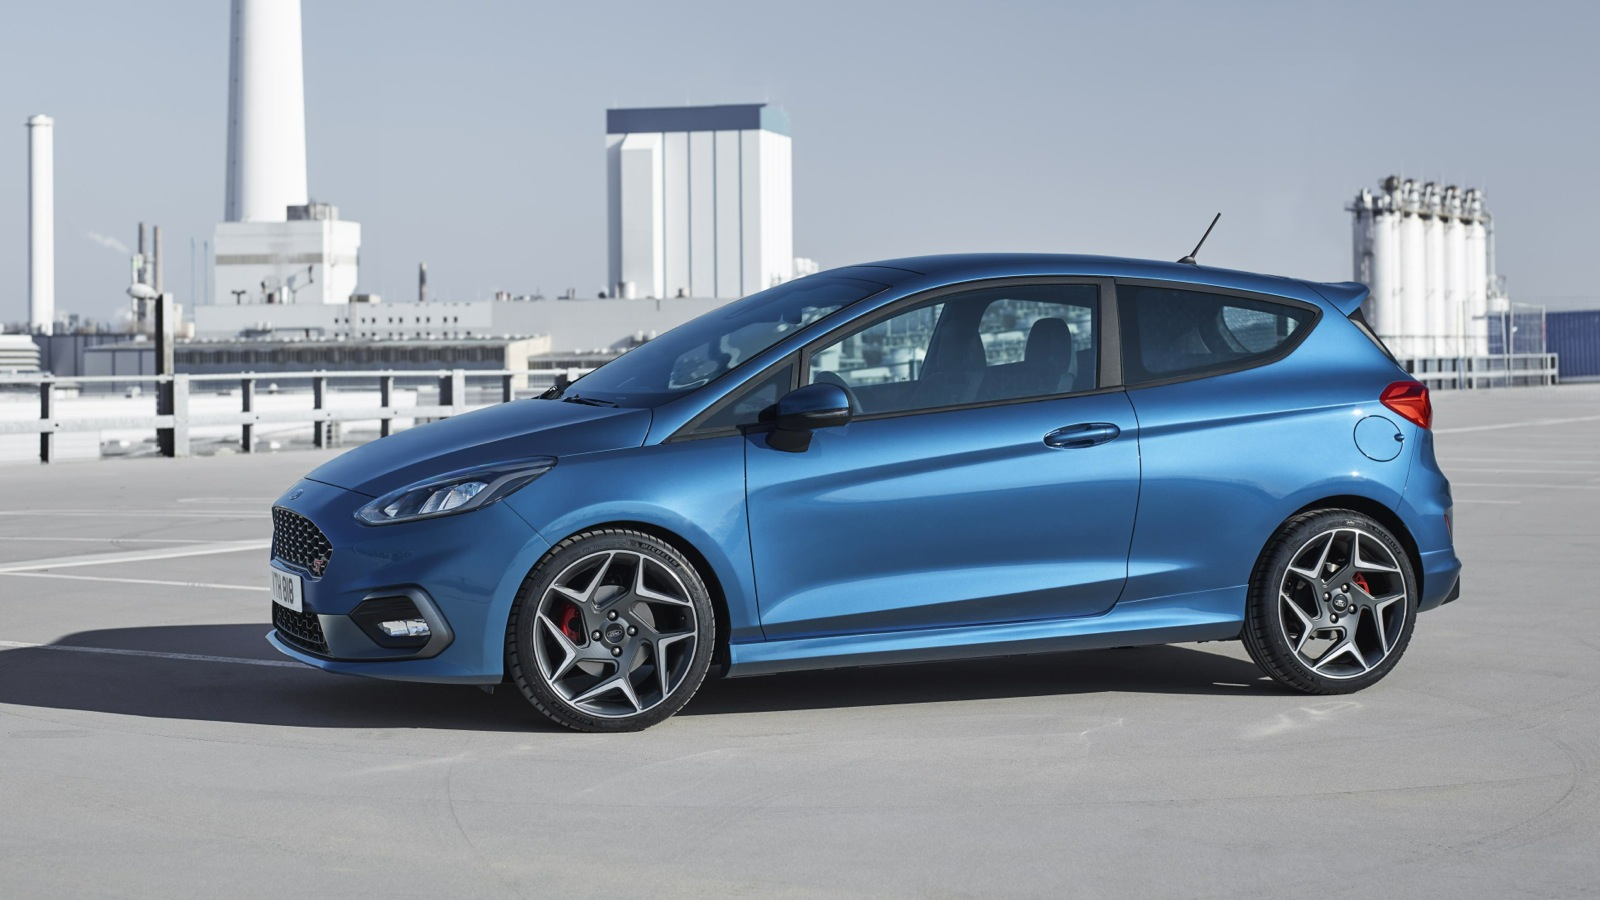 2017 ford fiesta st revealed with new three cylinder turbo engine photos 1 of 18. Black Bedroom Furniture Sets. Home Design Ideas